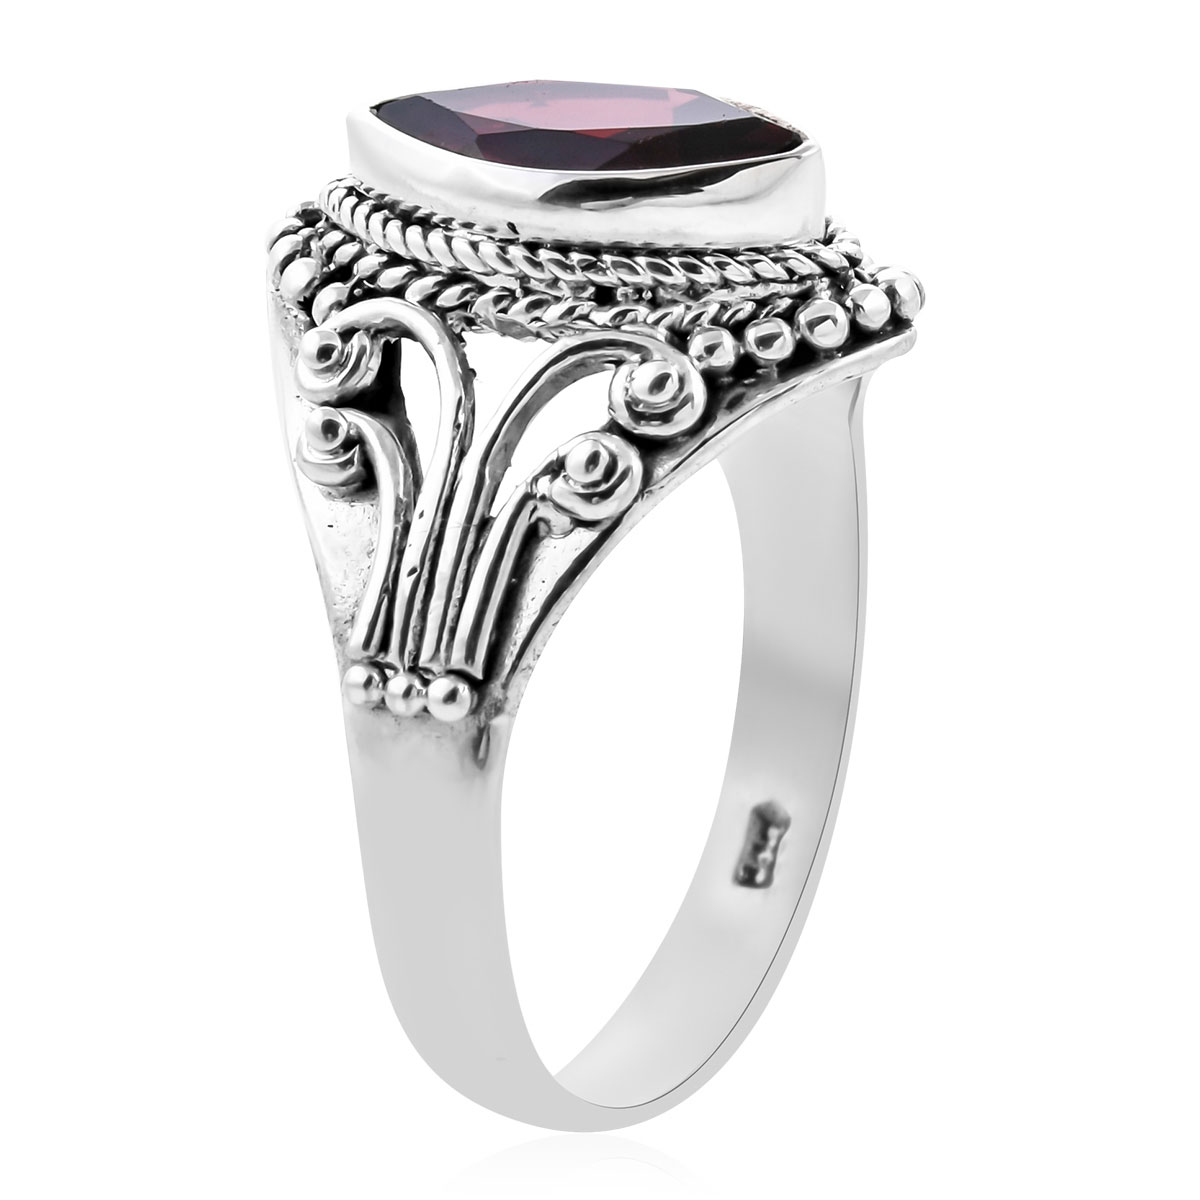 Solitaire Ring 925 Sterling Silver Round Garnet Gift Jewelry Size 10 Cttw 1.8